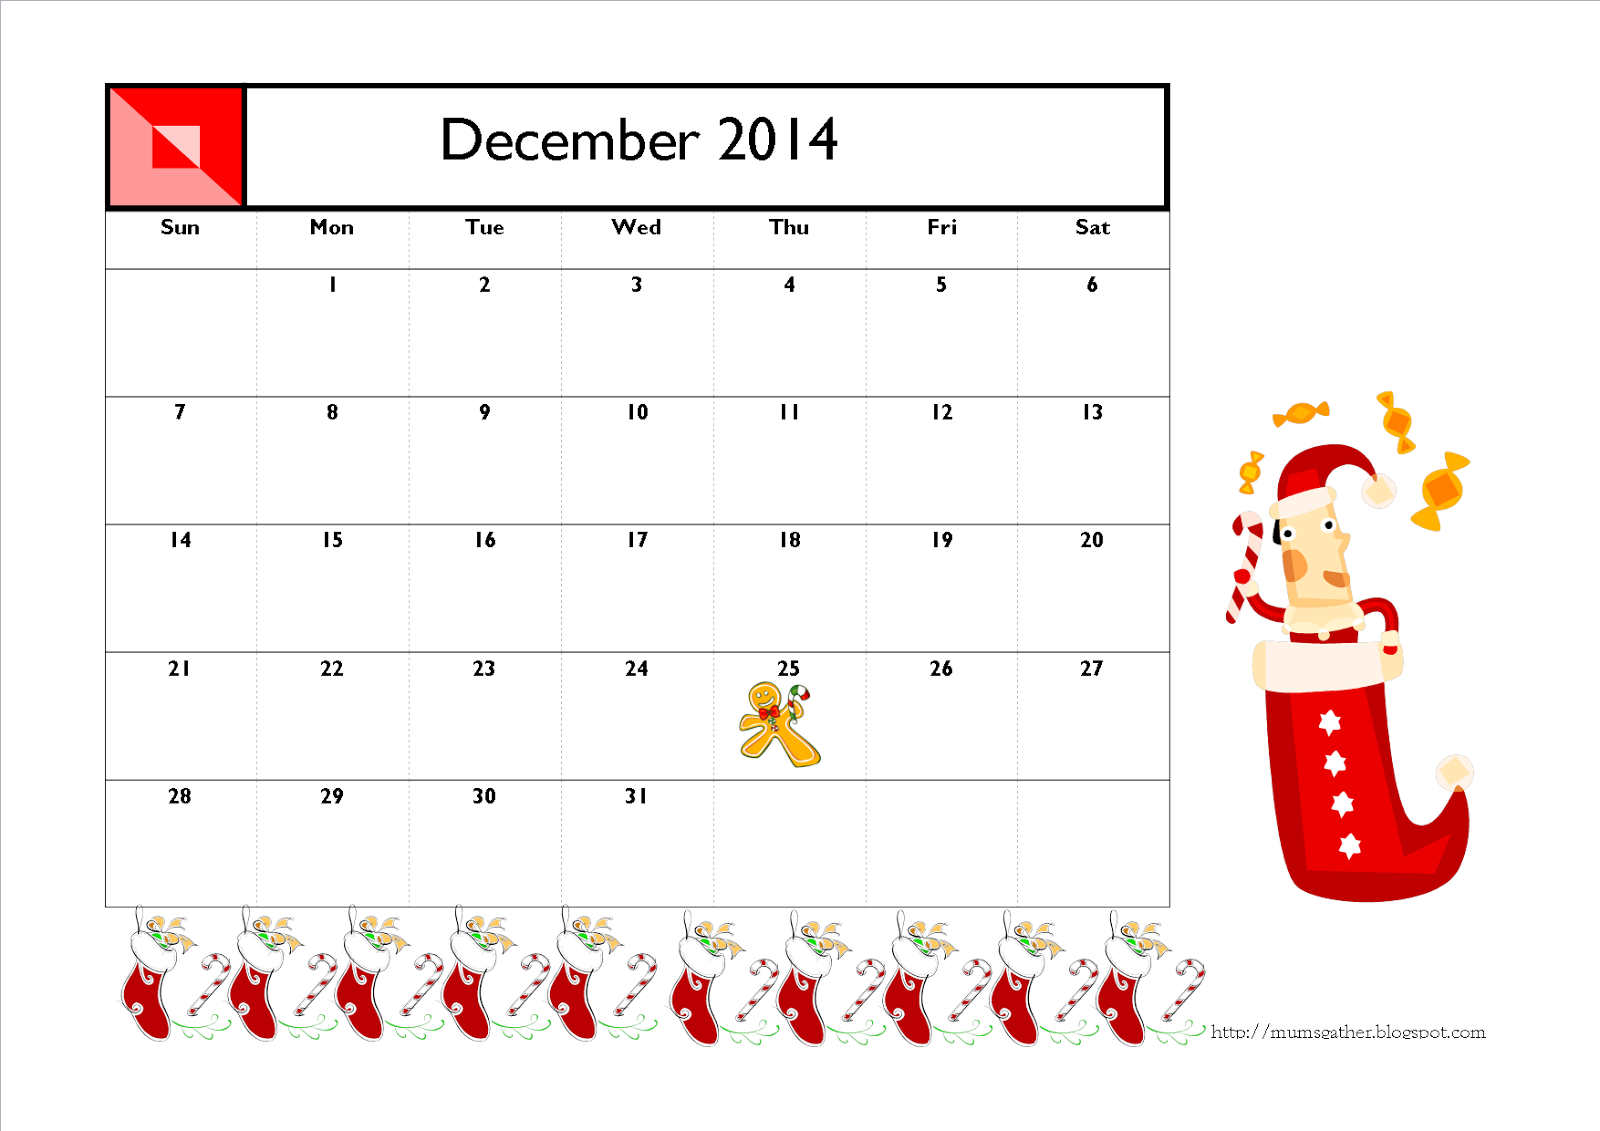 Christmas Calendar 2014 : December christmas calendar search results